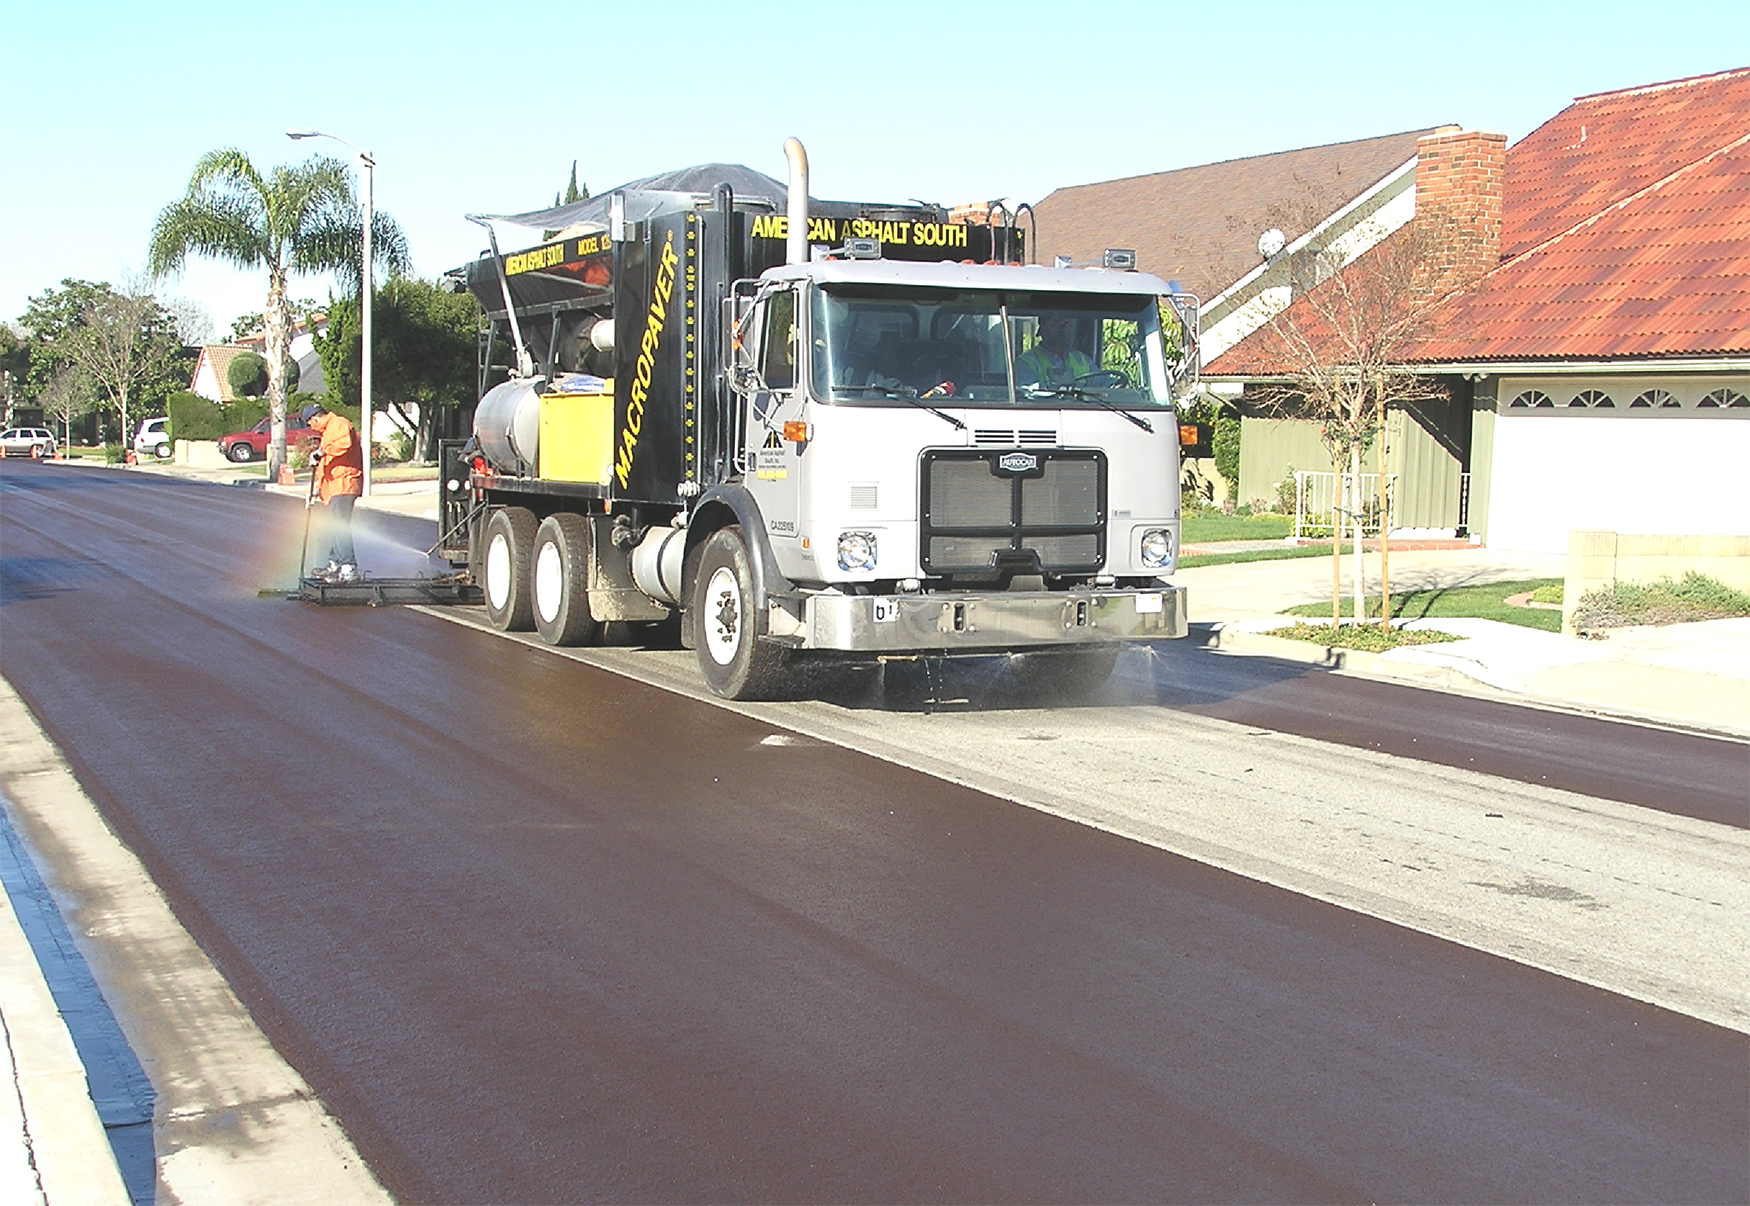 Slurry seal being applied to a street